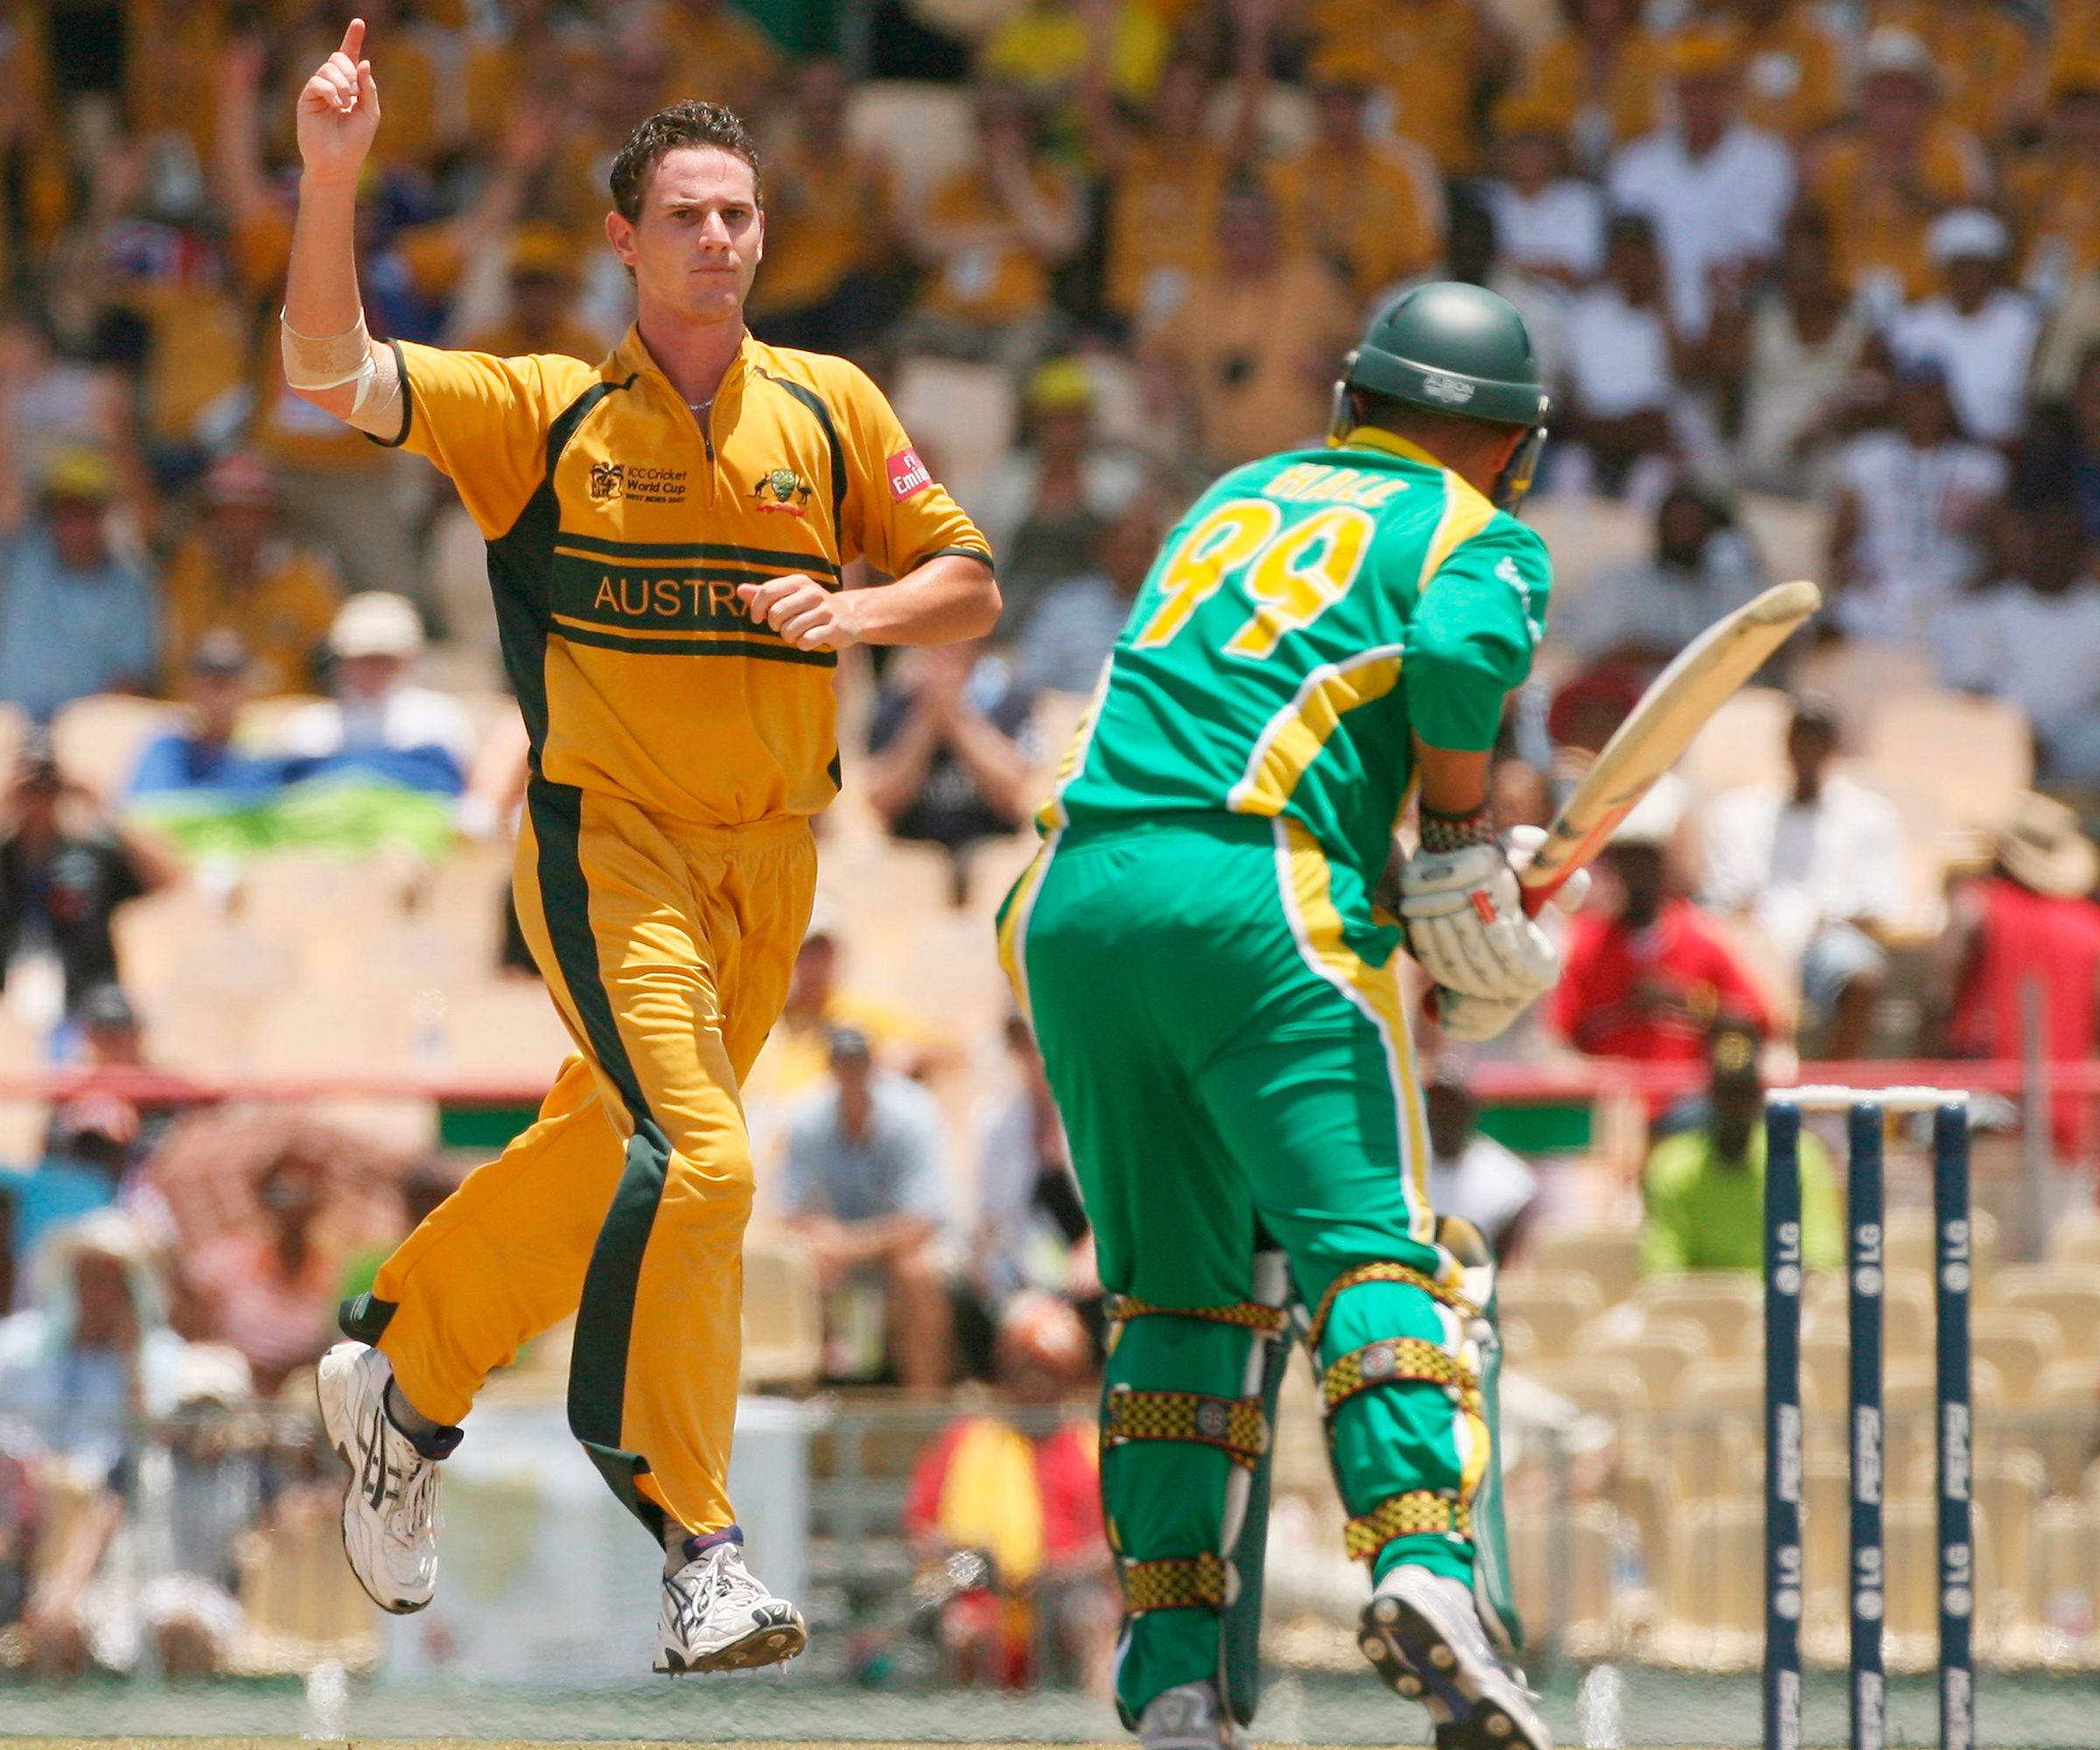 Tait took 23 wickets at 20 in Australia's triumphant World Cup campaign // Getty